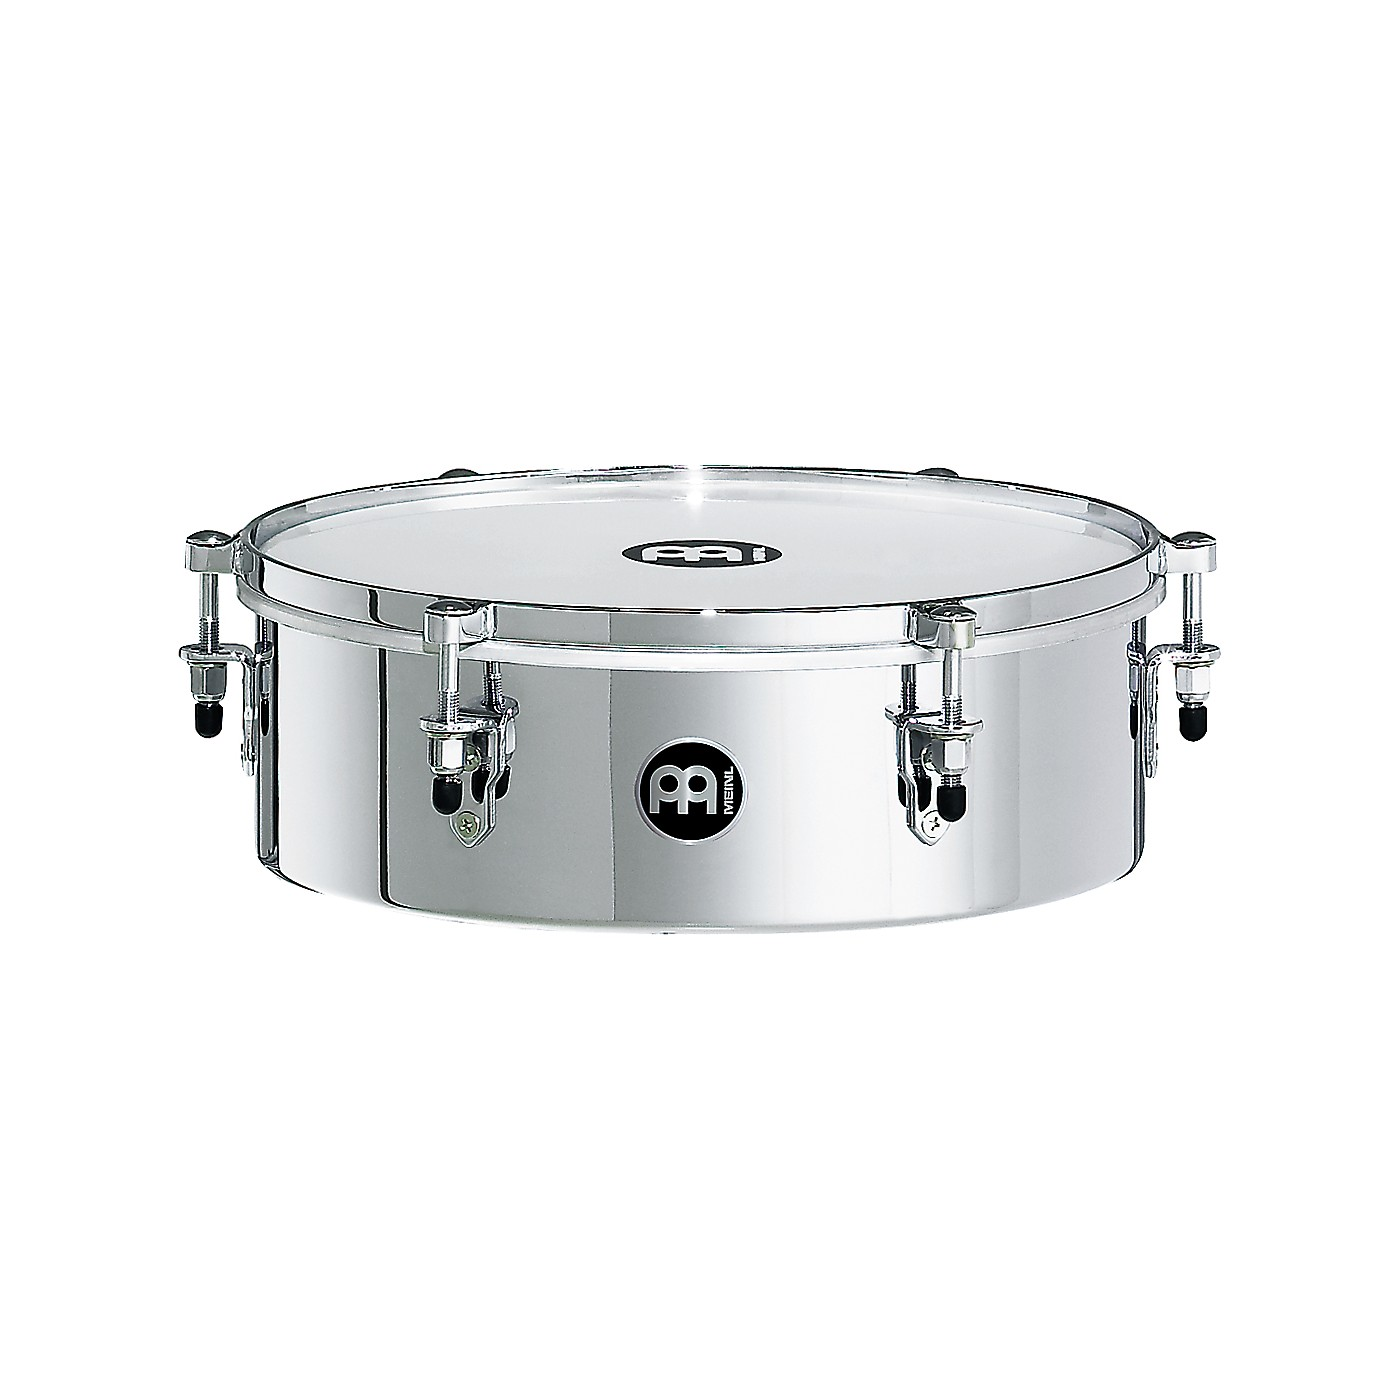 Meinl Mountable Drummer Timbale thumbnail